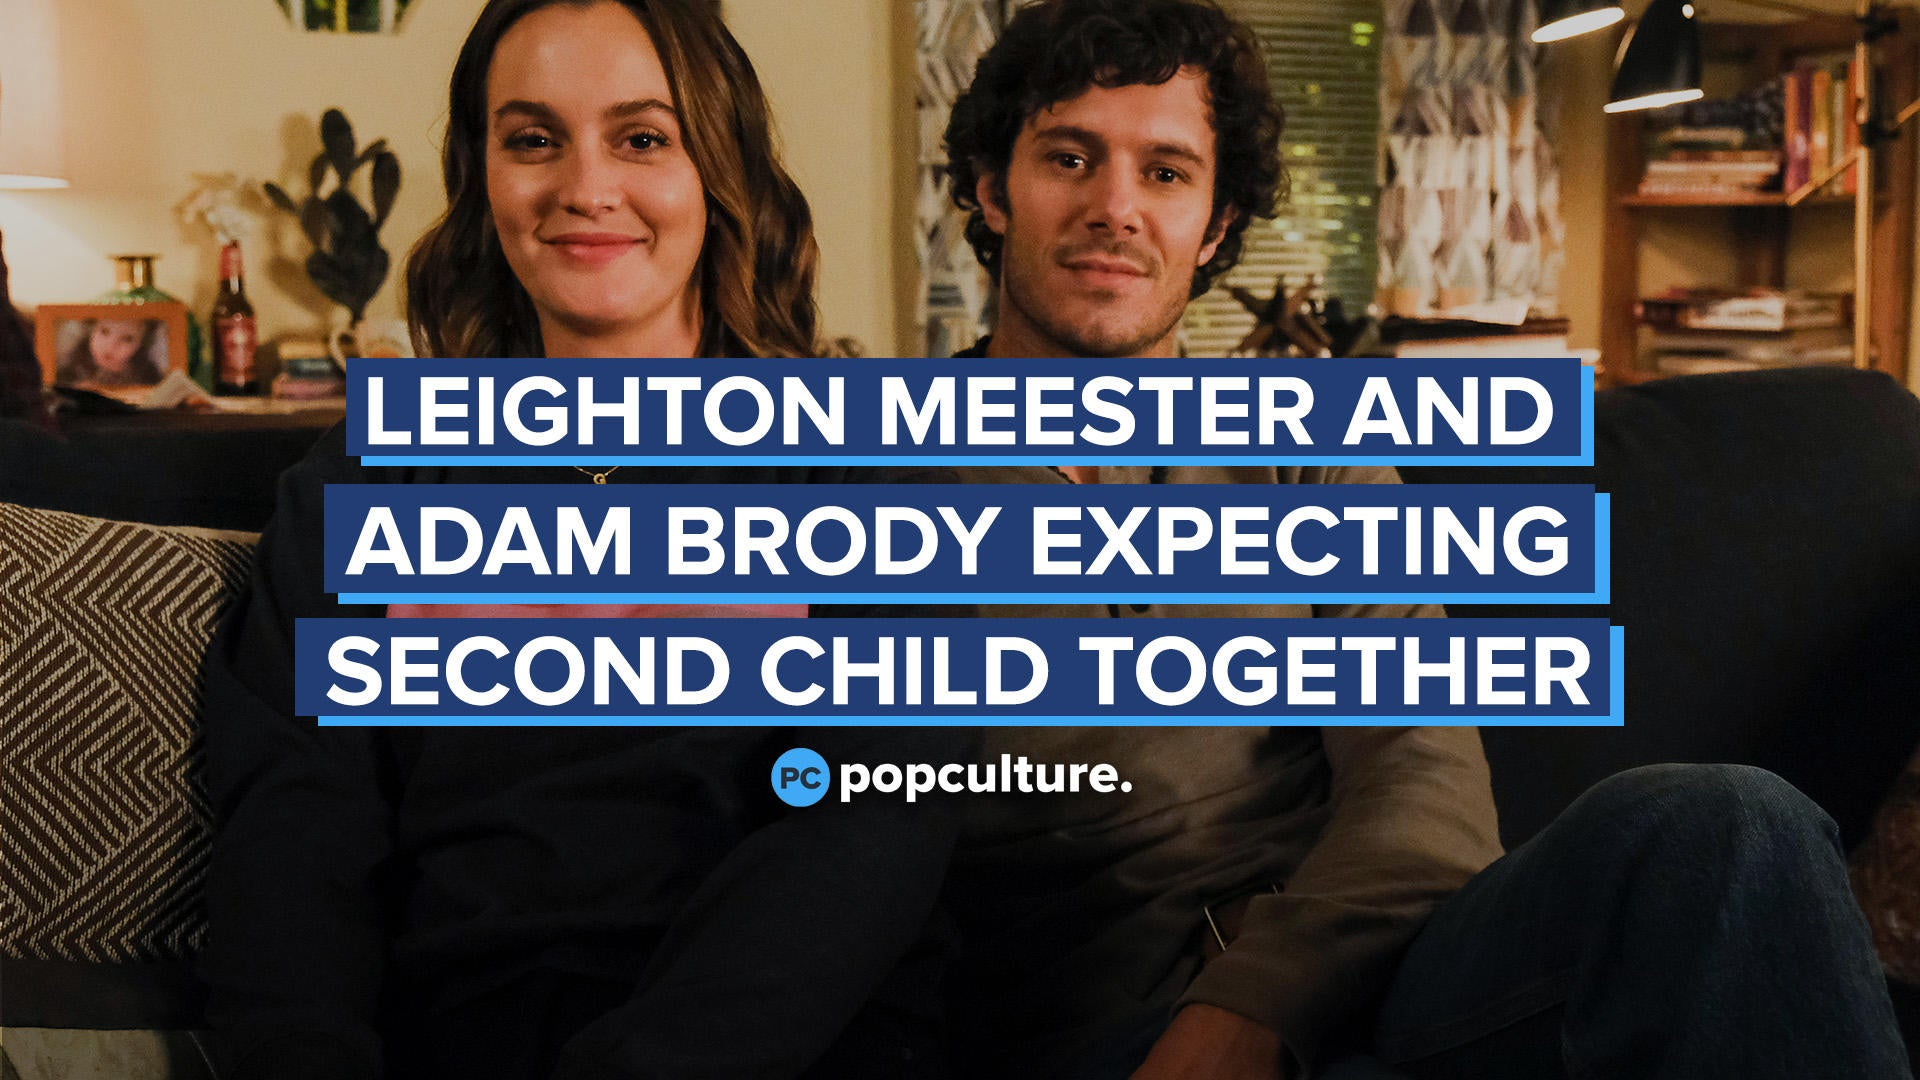 Adam Brody and Leighton Meester Expecting Second Child Together